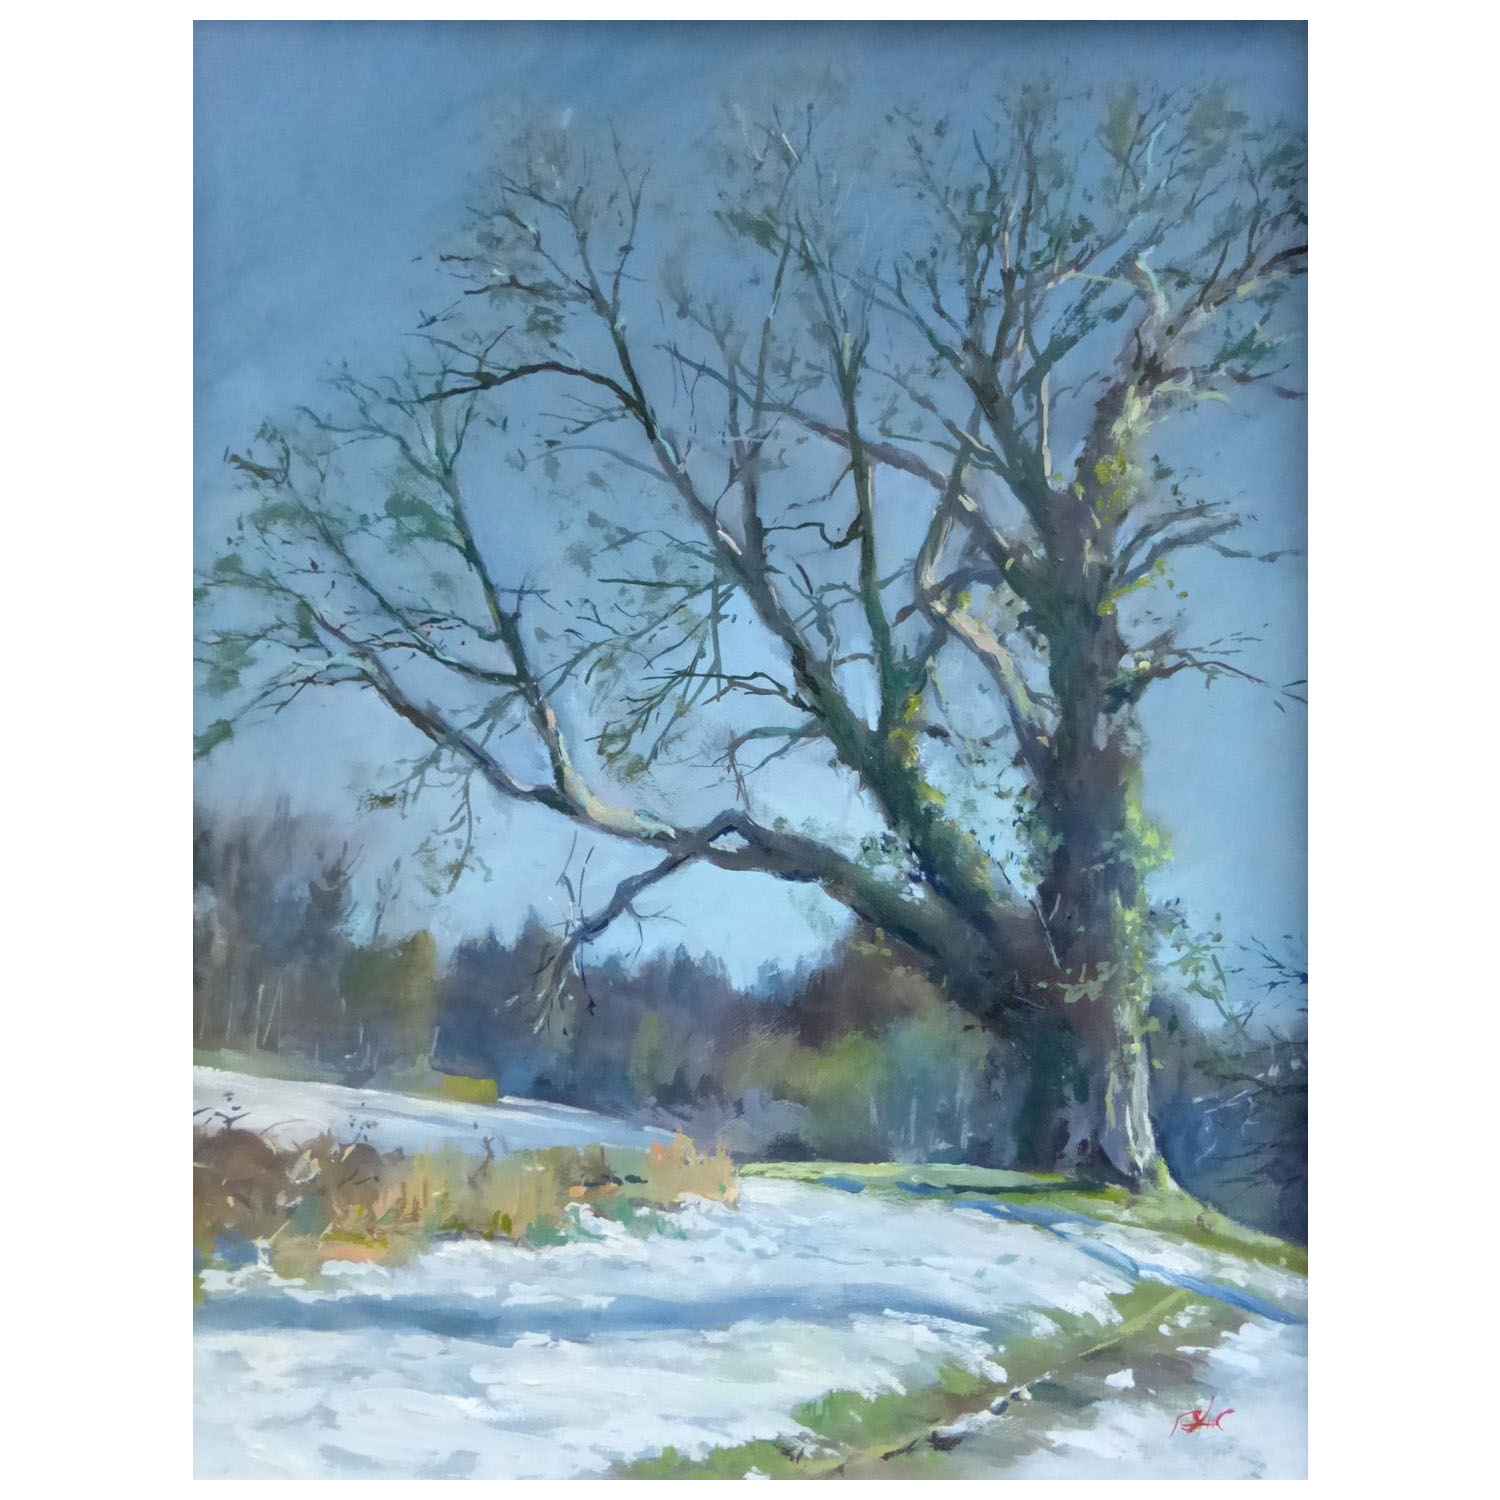 Brian A Collins ARSMA, Cotswolds Trees Oil, 350mmx450mm, £125